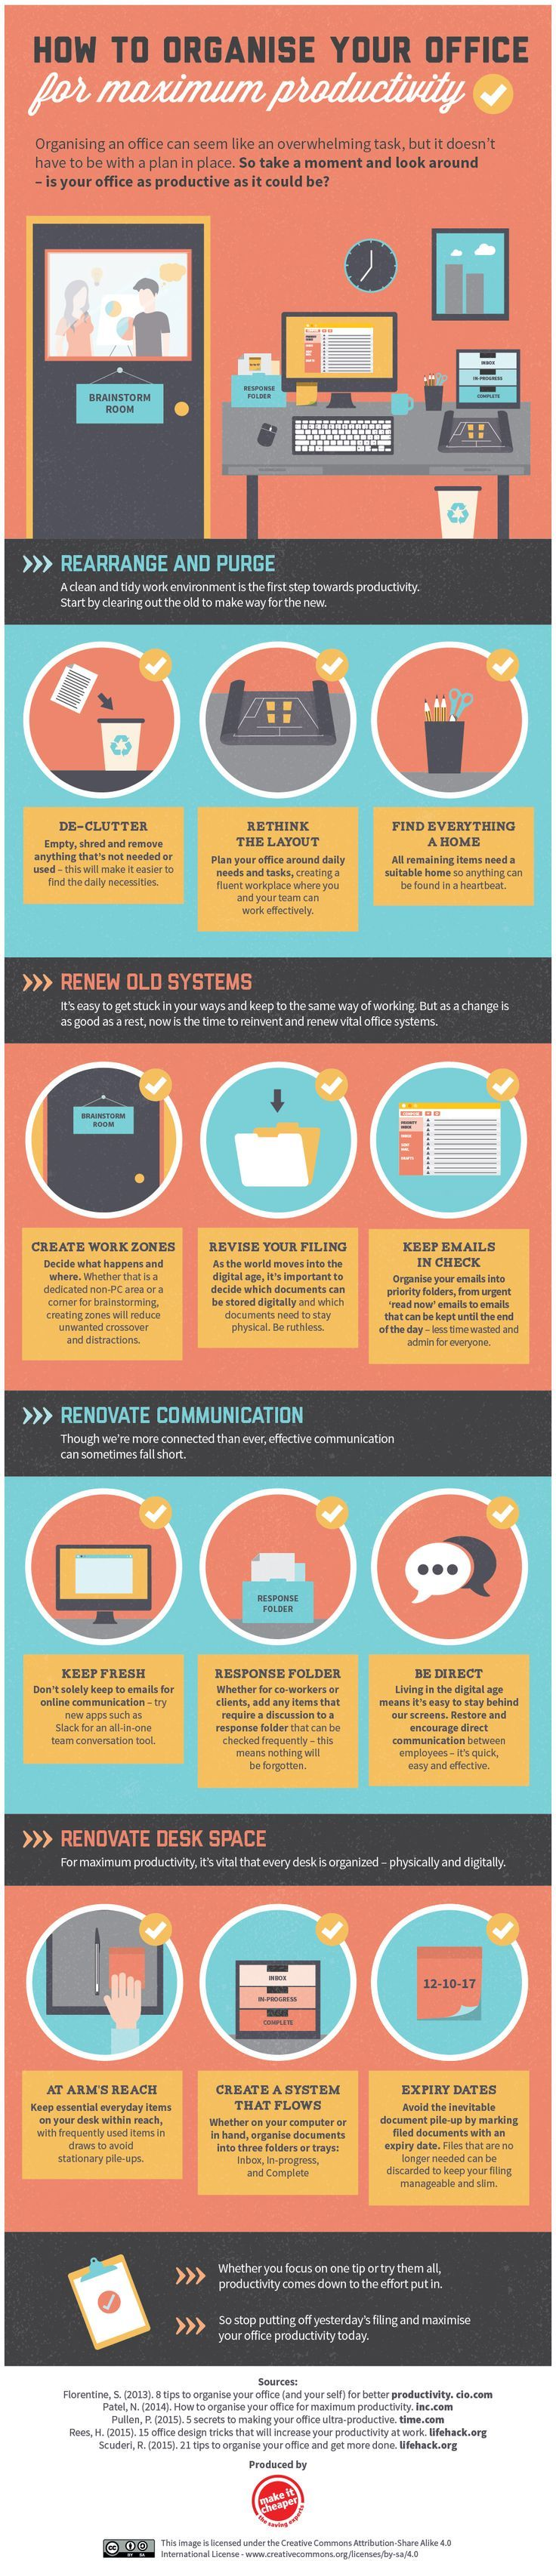 Infographic:How to Organise Your Office for Maximum Productivity